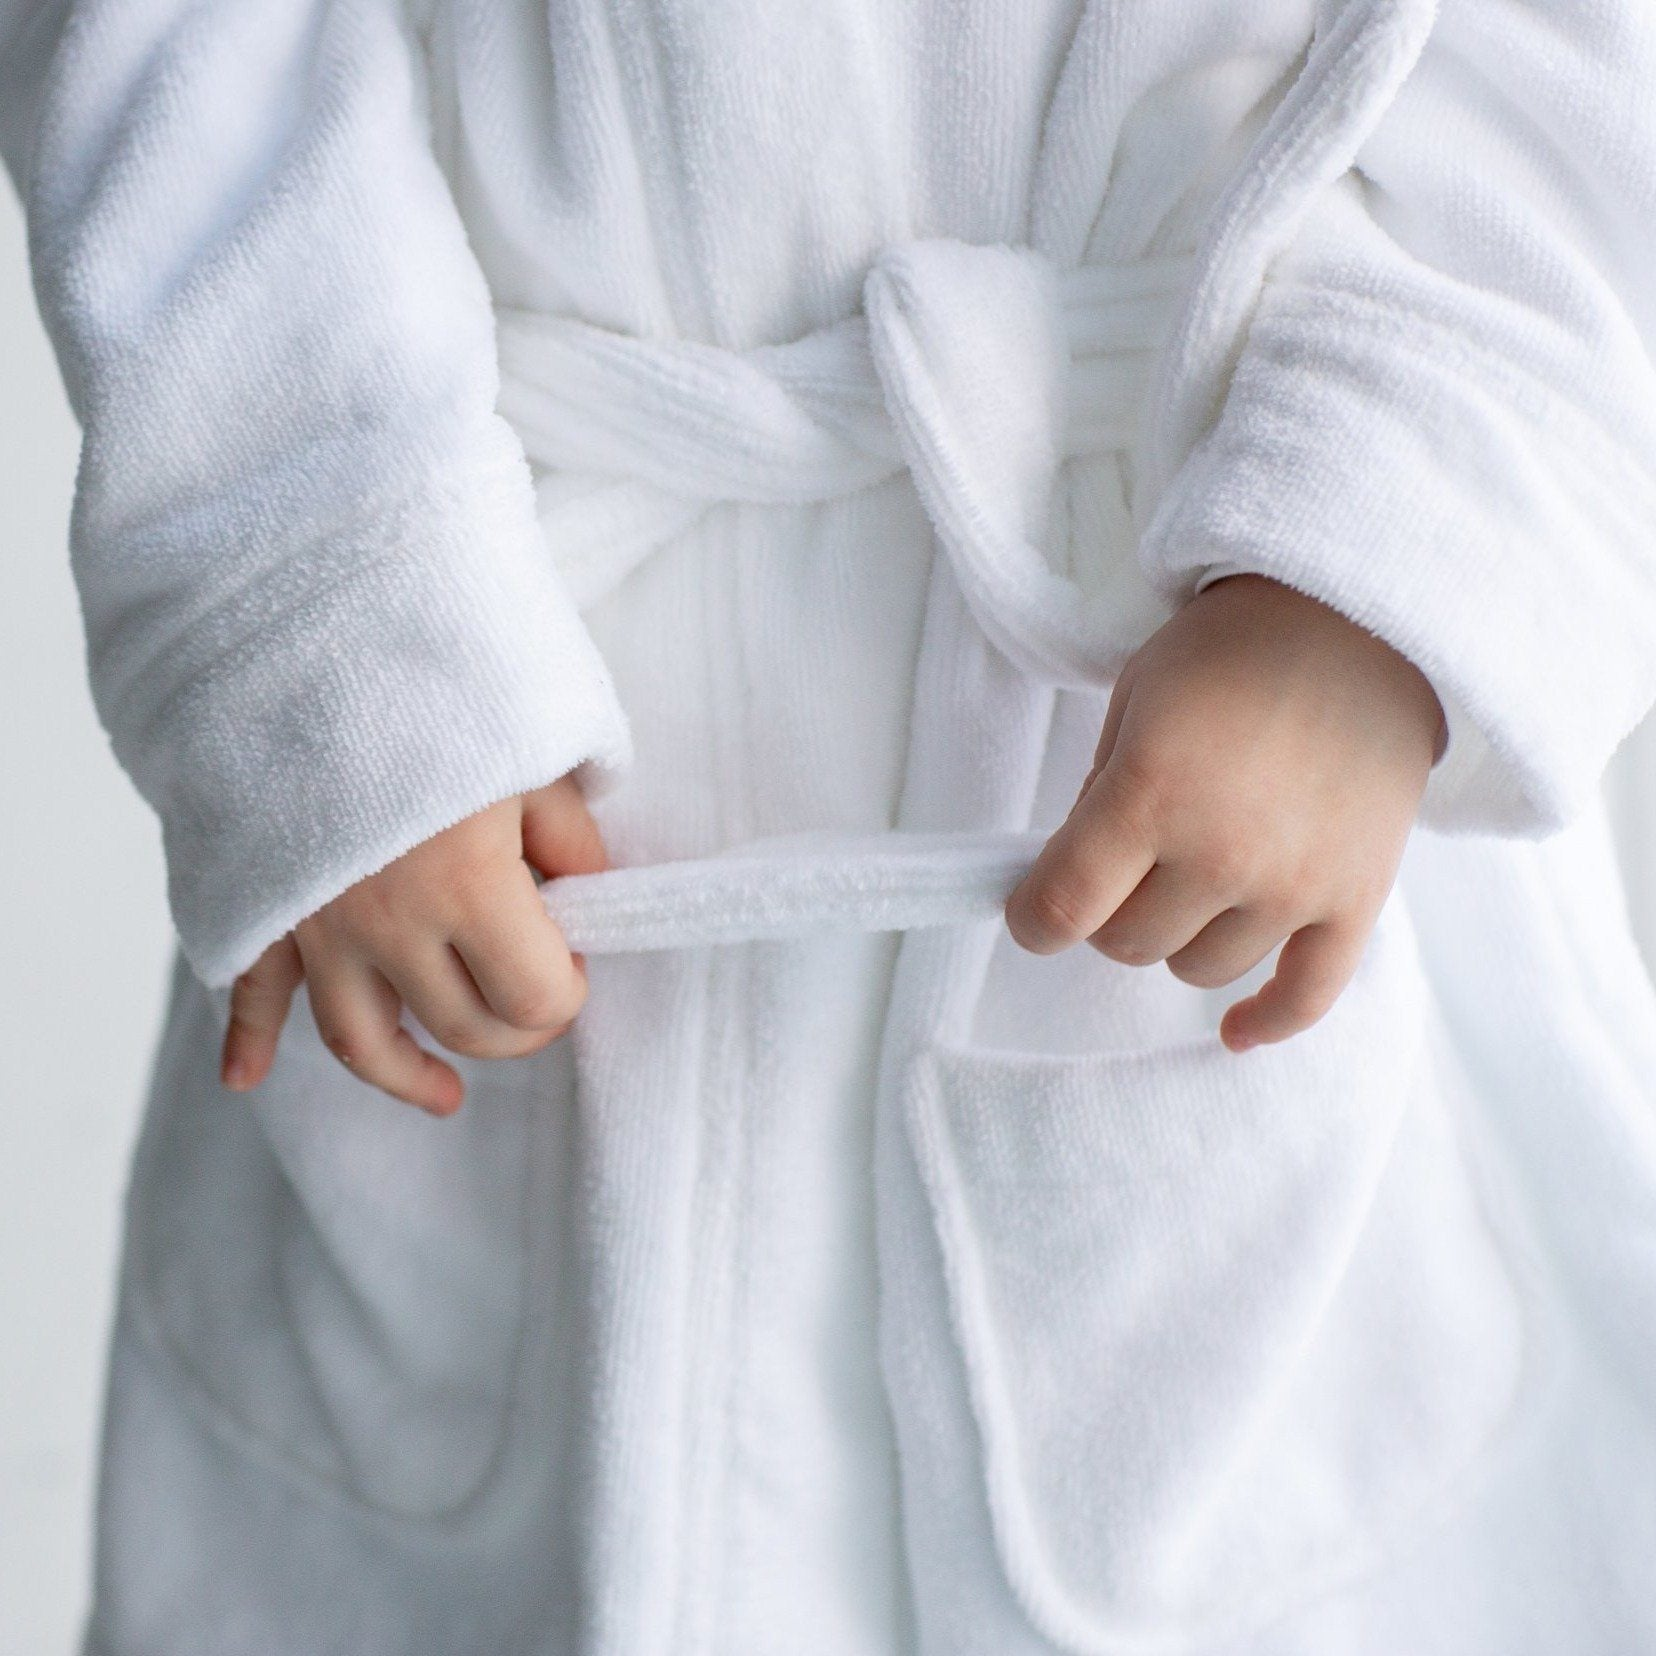 Close up child hands and bathrobe